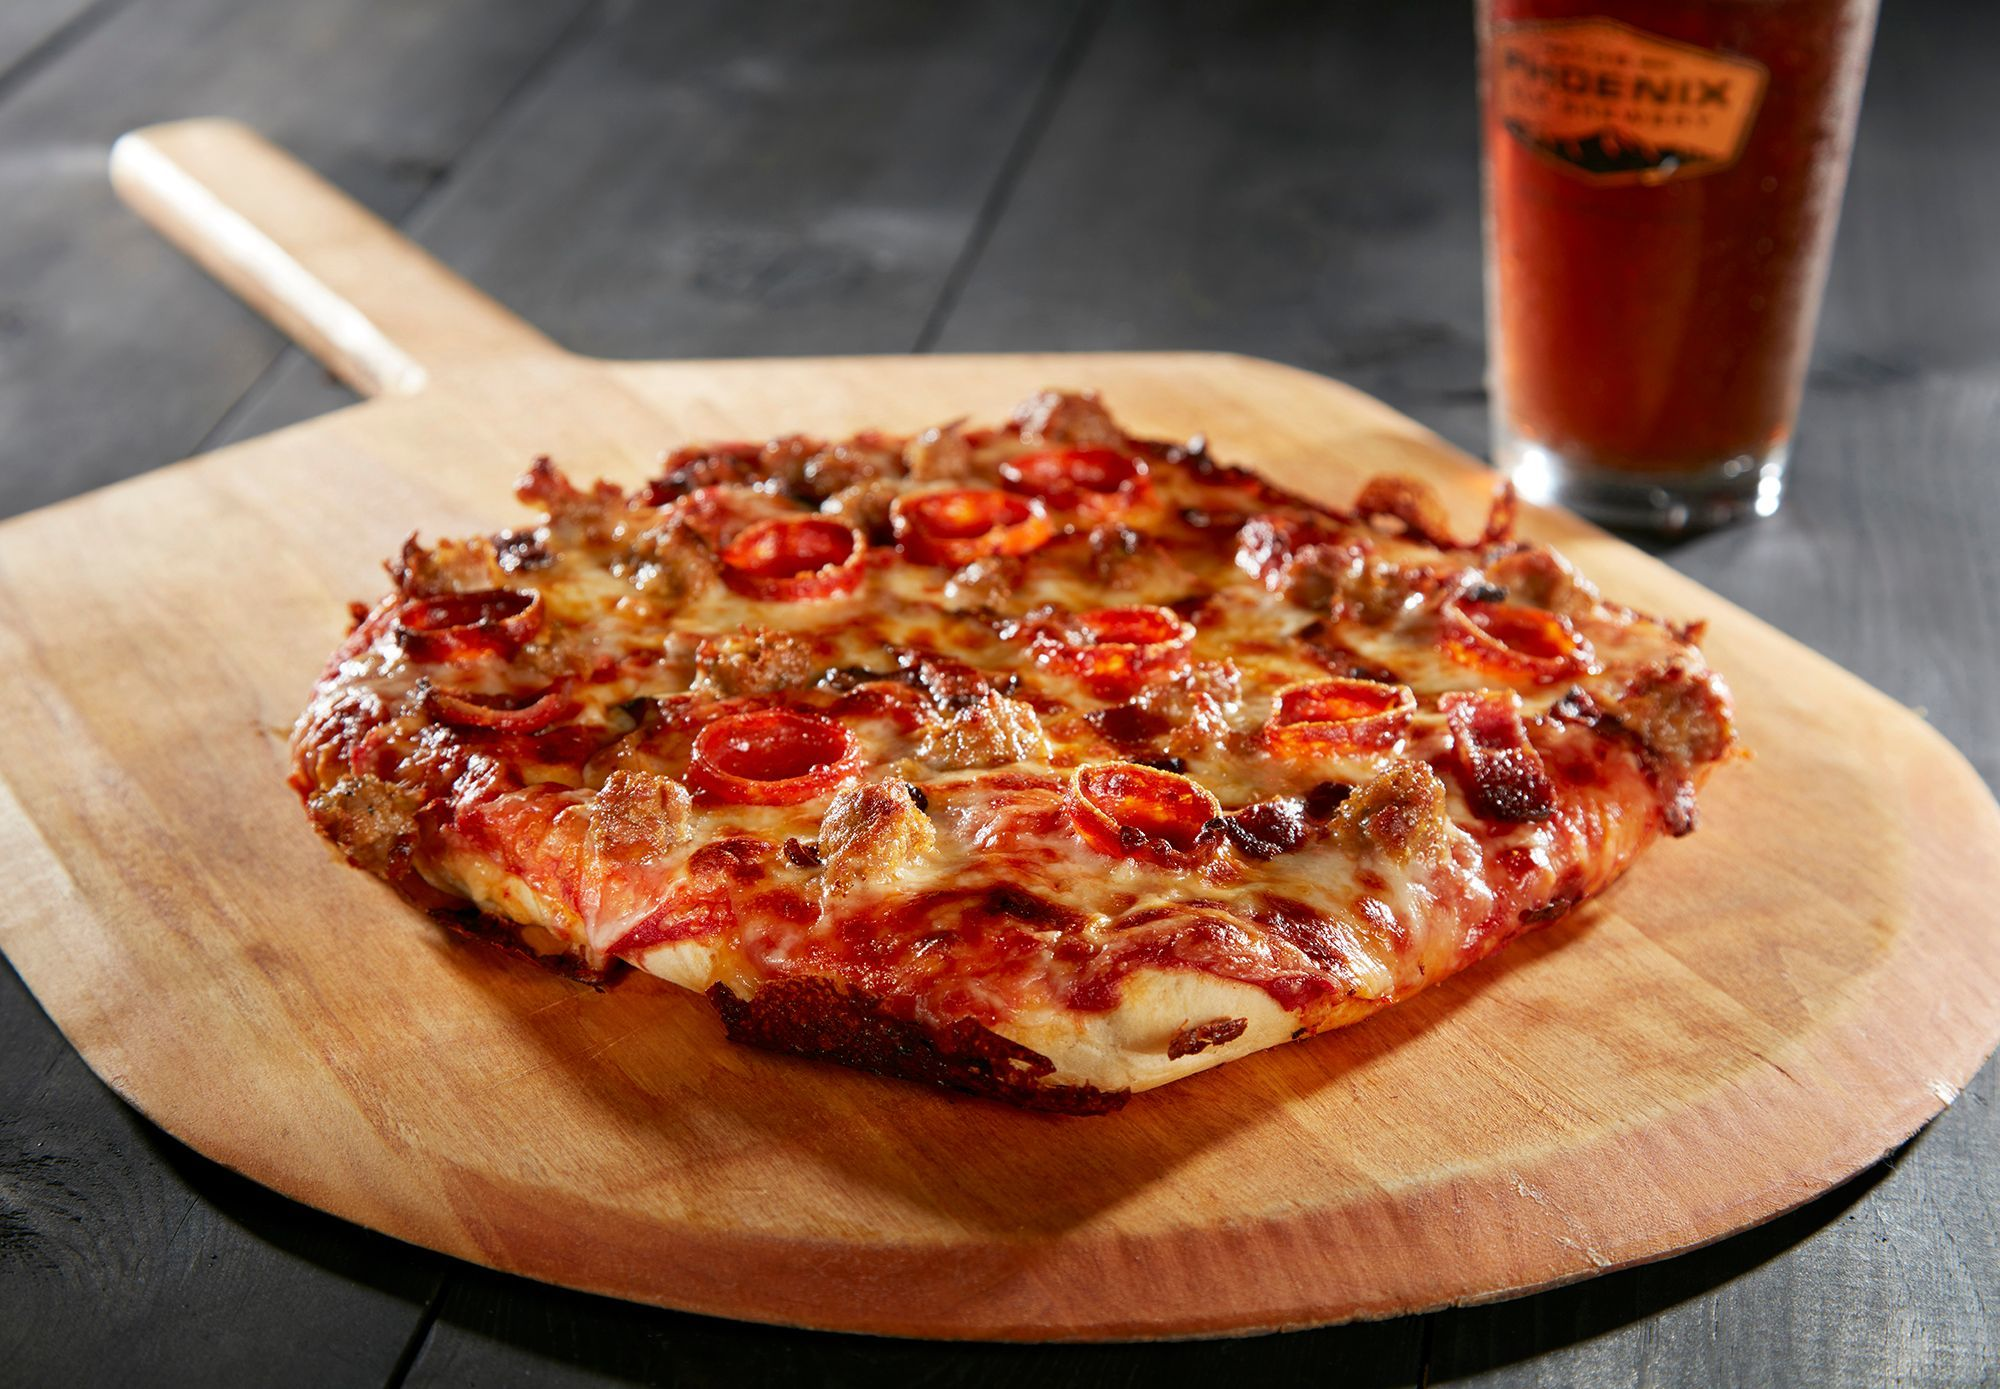 Phoenix Ale Brewery Central Kitchen | Nov. 11, get a free 10-inch, one-topping black iron pizza. | Details: 5813 N. Seventh St., Phoenix. 602-313-8713, centralkitchenaz.com.